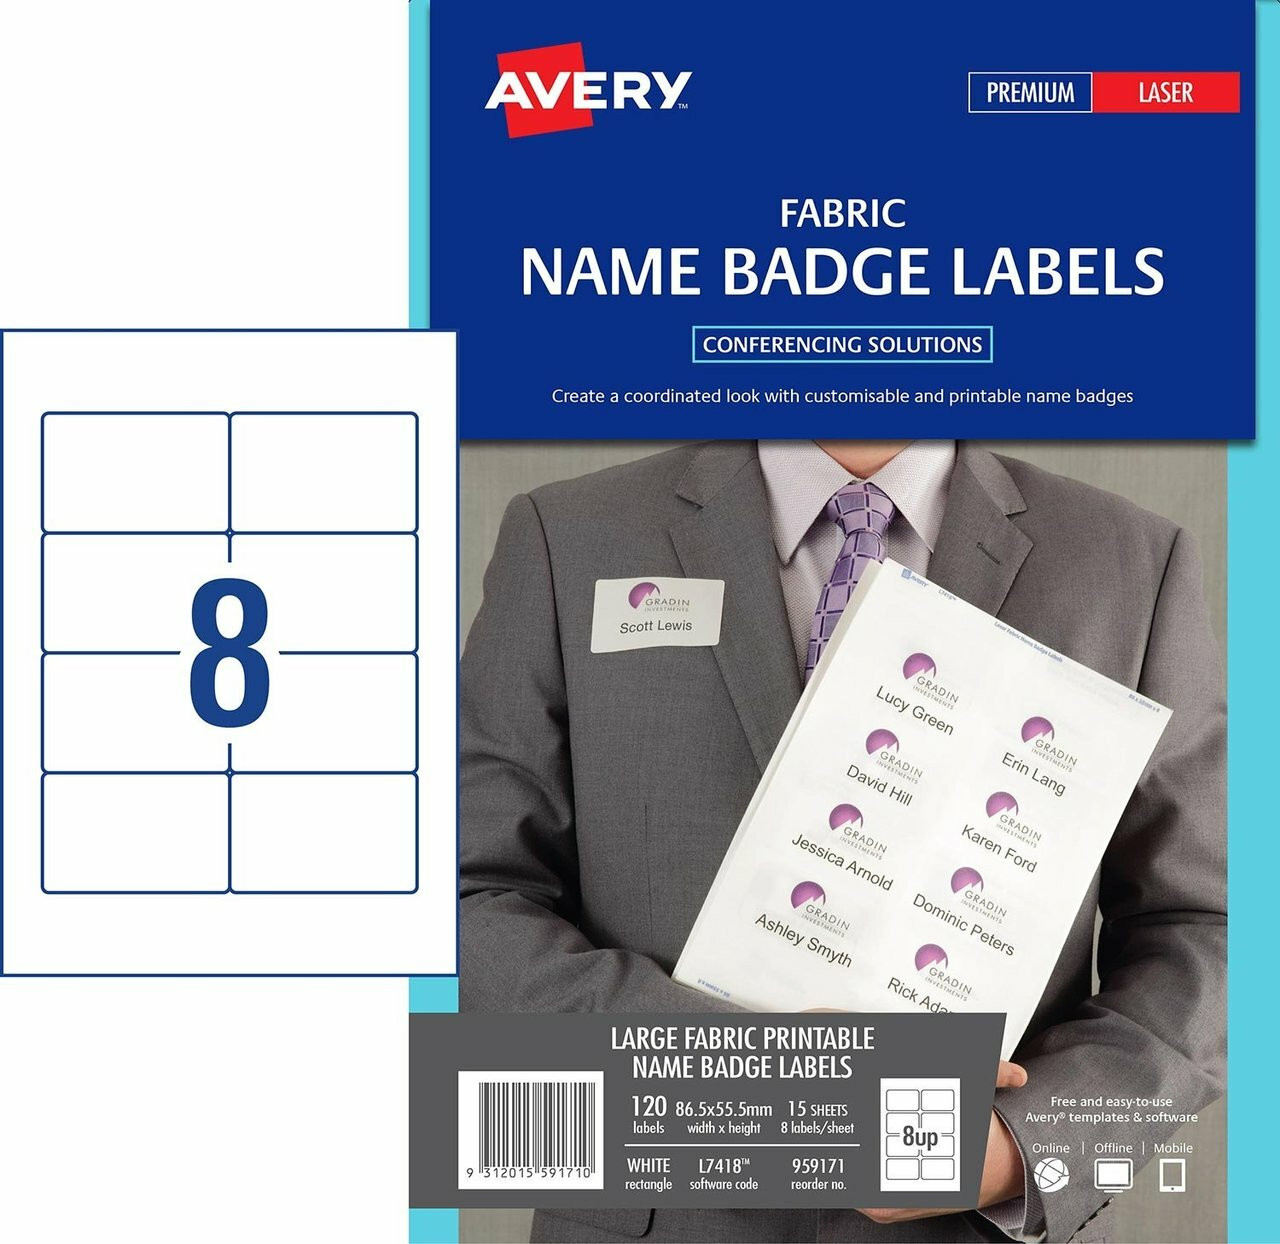 picture about Printable Fabric Labels referred to as AVERY 959171 Cloth Reputation BADGE LABELS - L7418 - 120/PACK - 86.5 X 55.5 MM WHITE 8UP